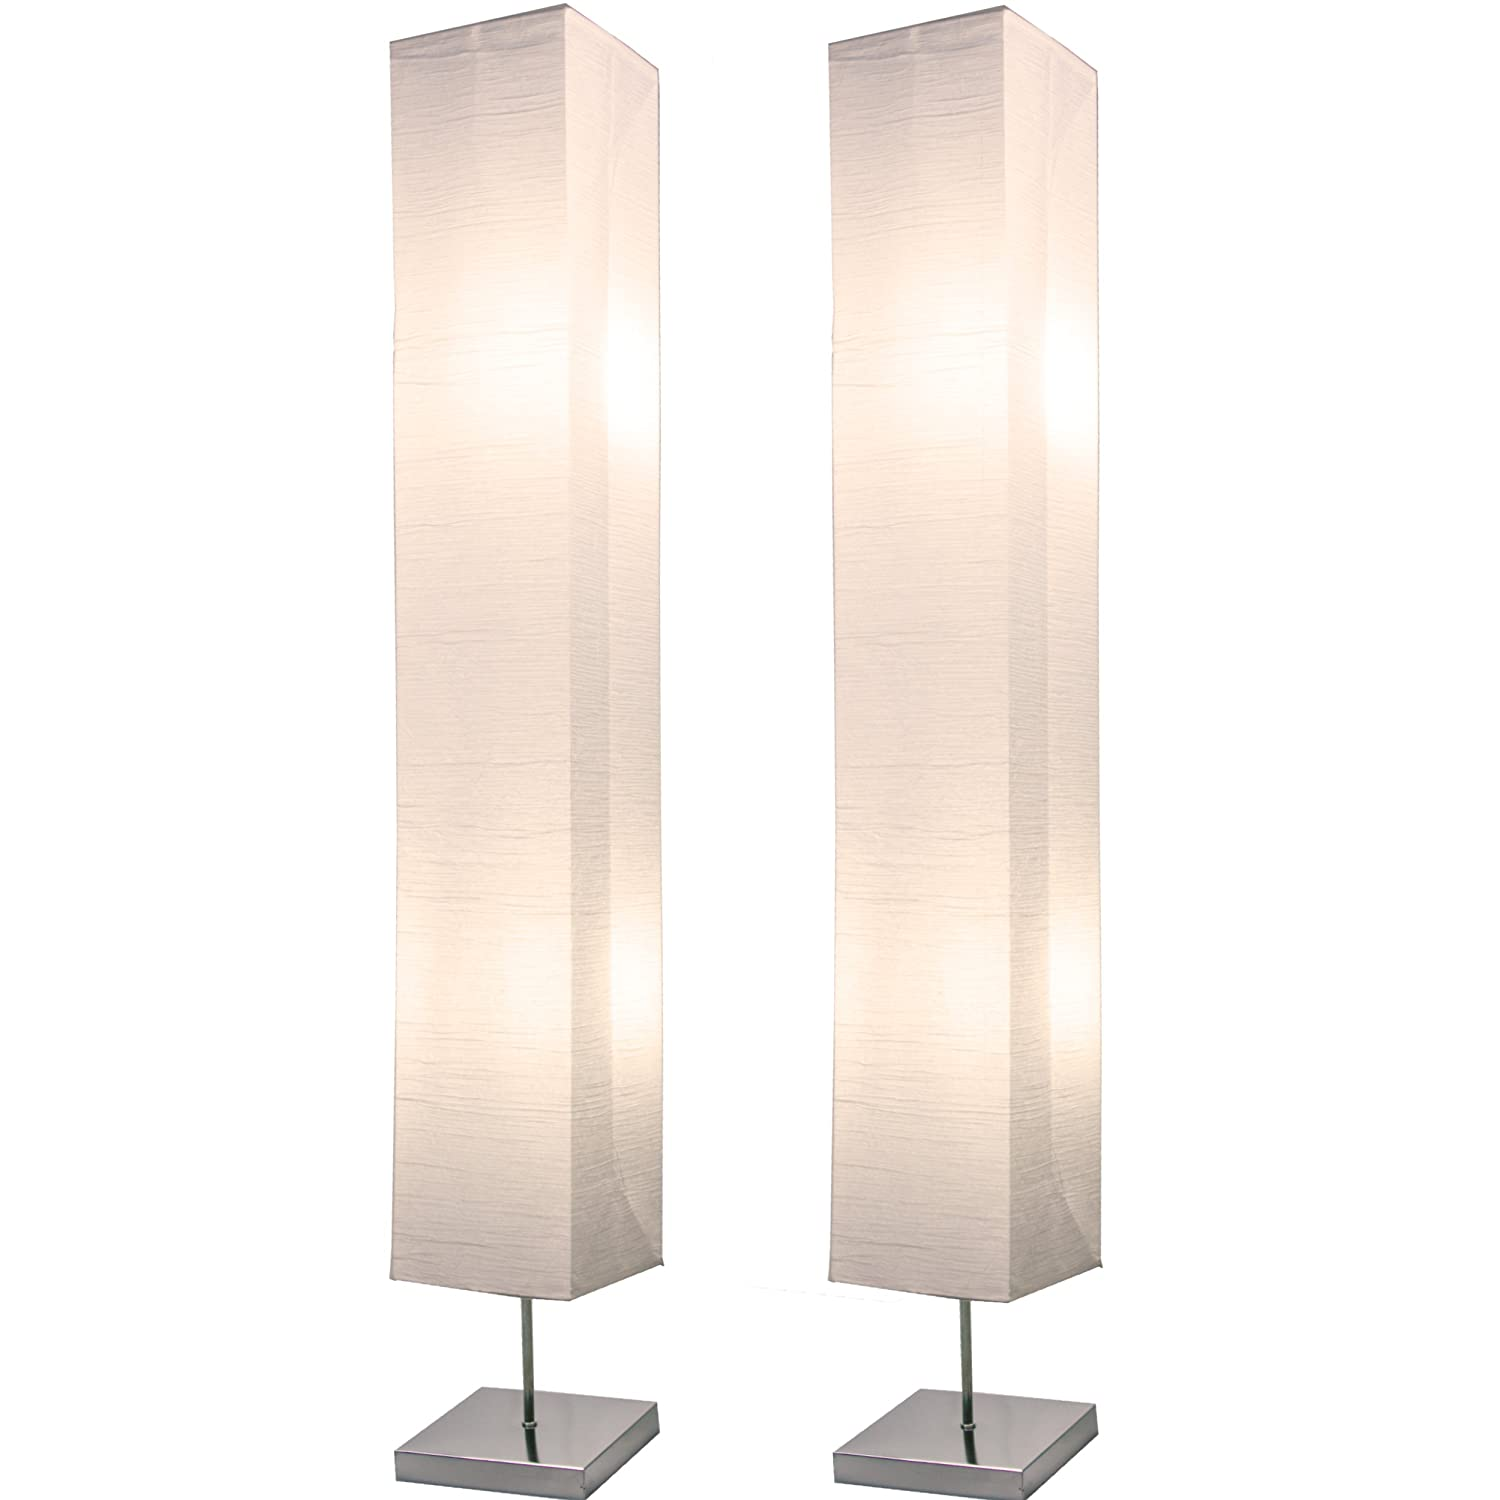 Light Accents Honors Chrome Floor Lamp Japanese Style Standing 50 Inches Tall with White Paper Shade (Set of 2)